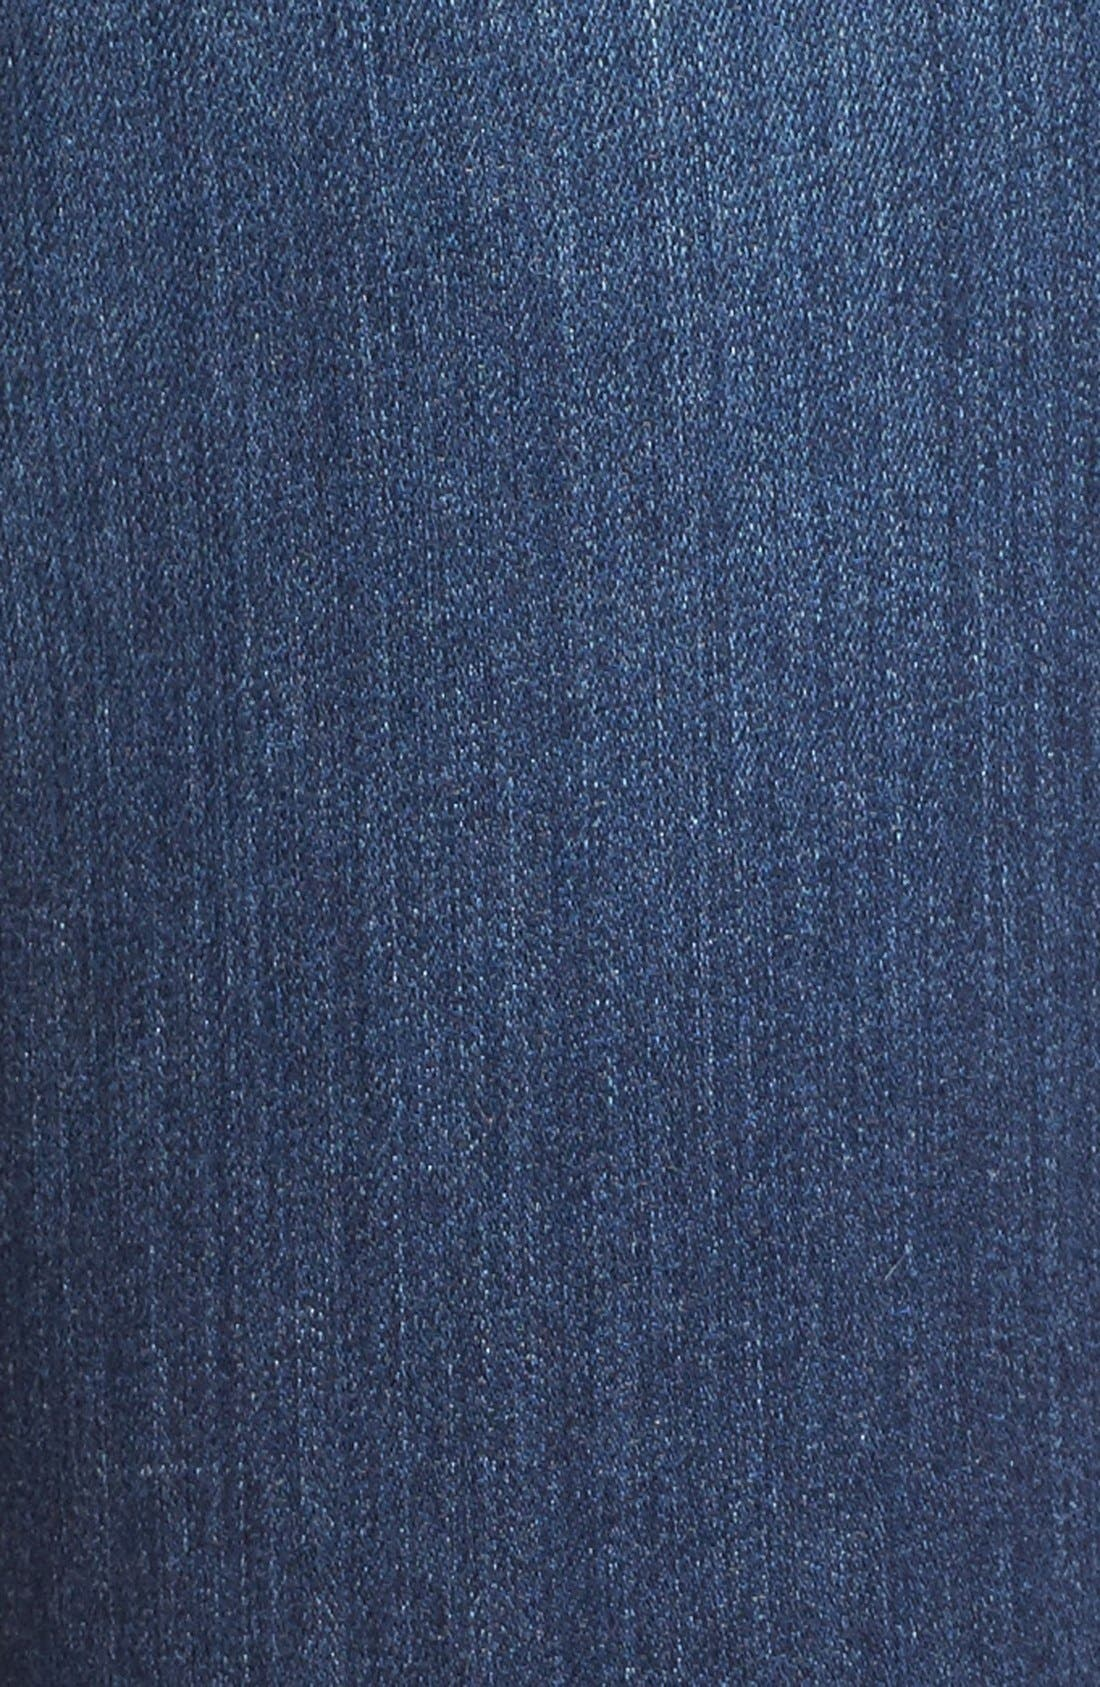 'Ami' Stretch Skinny Jeans,                             Alternate thumbnail 3, color,                             428